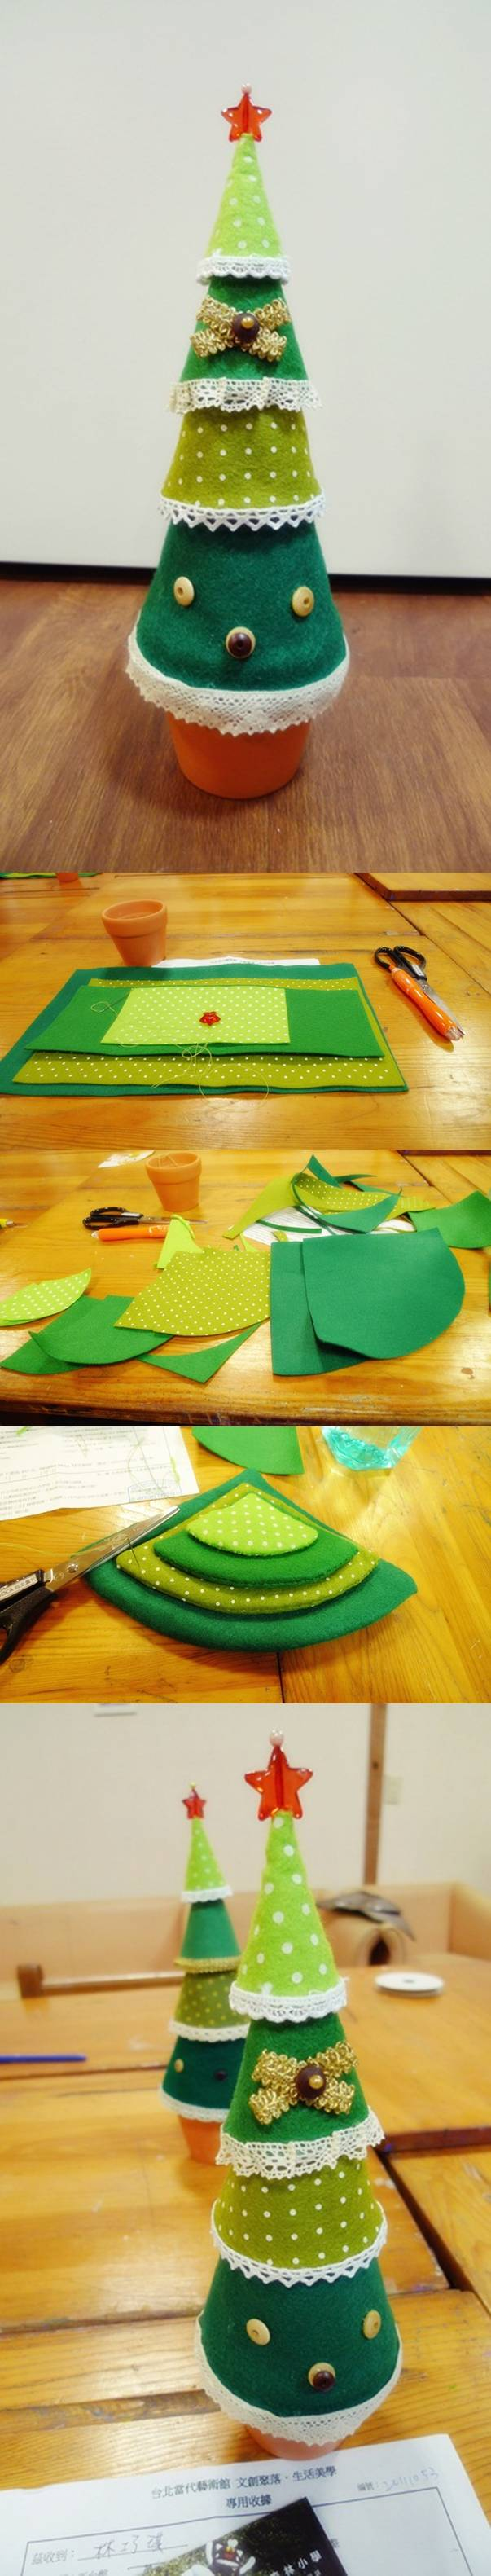 diy-easy-felt-christmas-tree Step by step Christmas Tree Crafts for Kids to Make